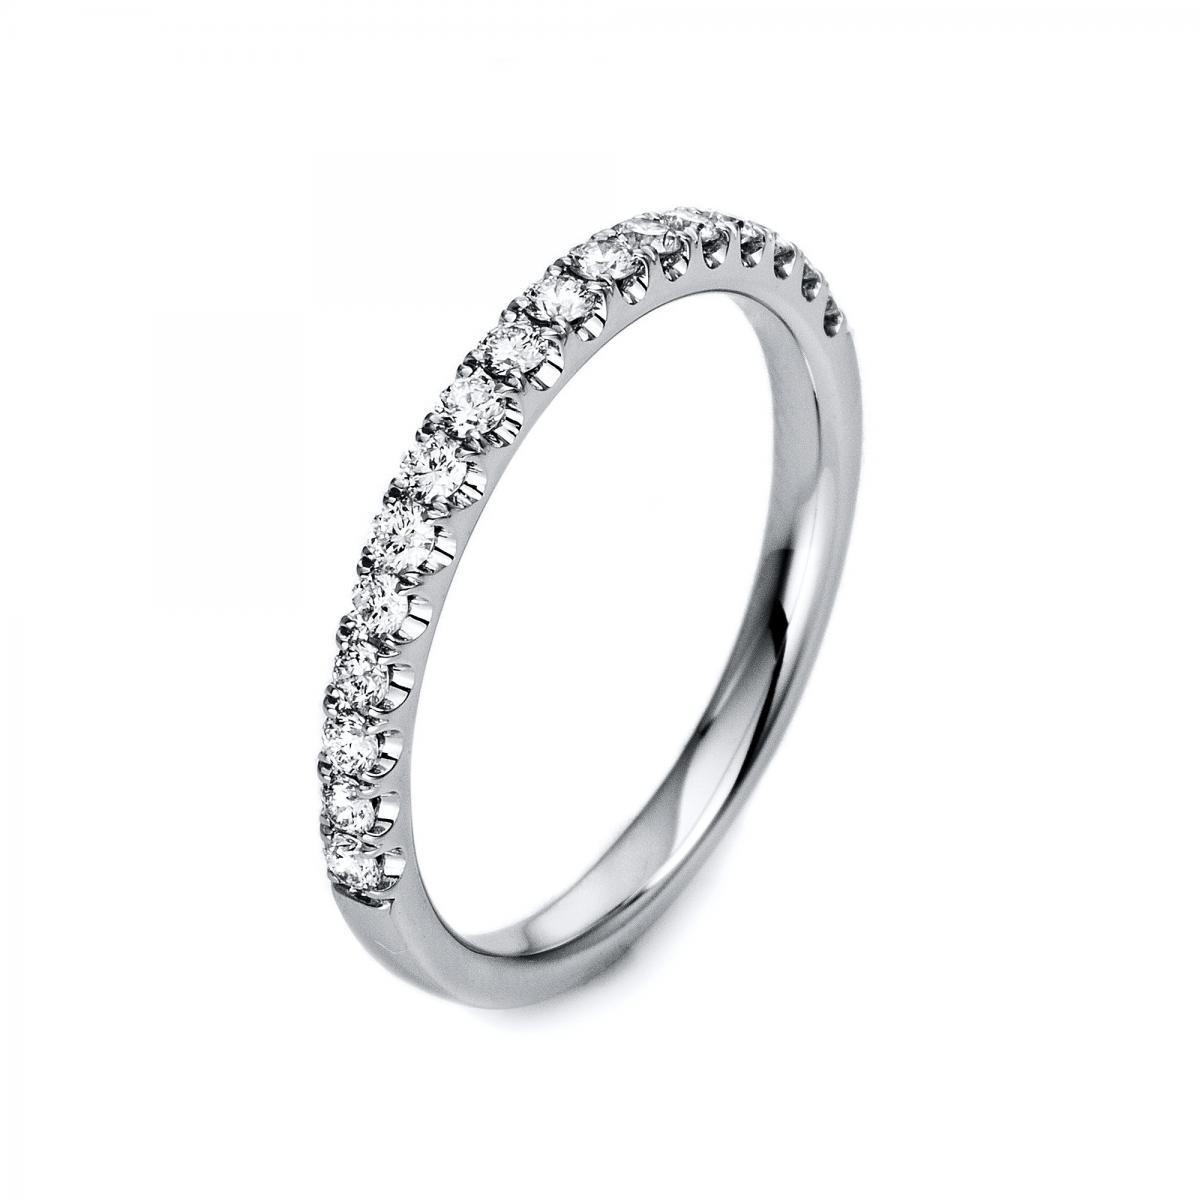 Ring 18 ct white gold with 17 brilliants ca. 0,32 ct, Gr. 53